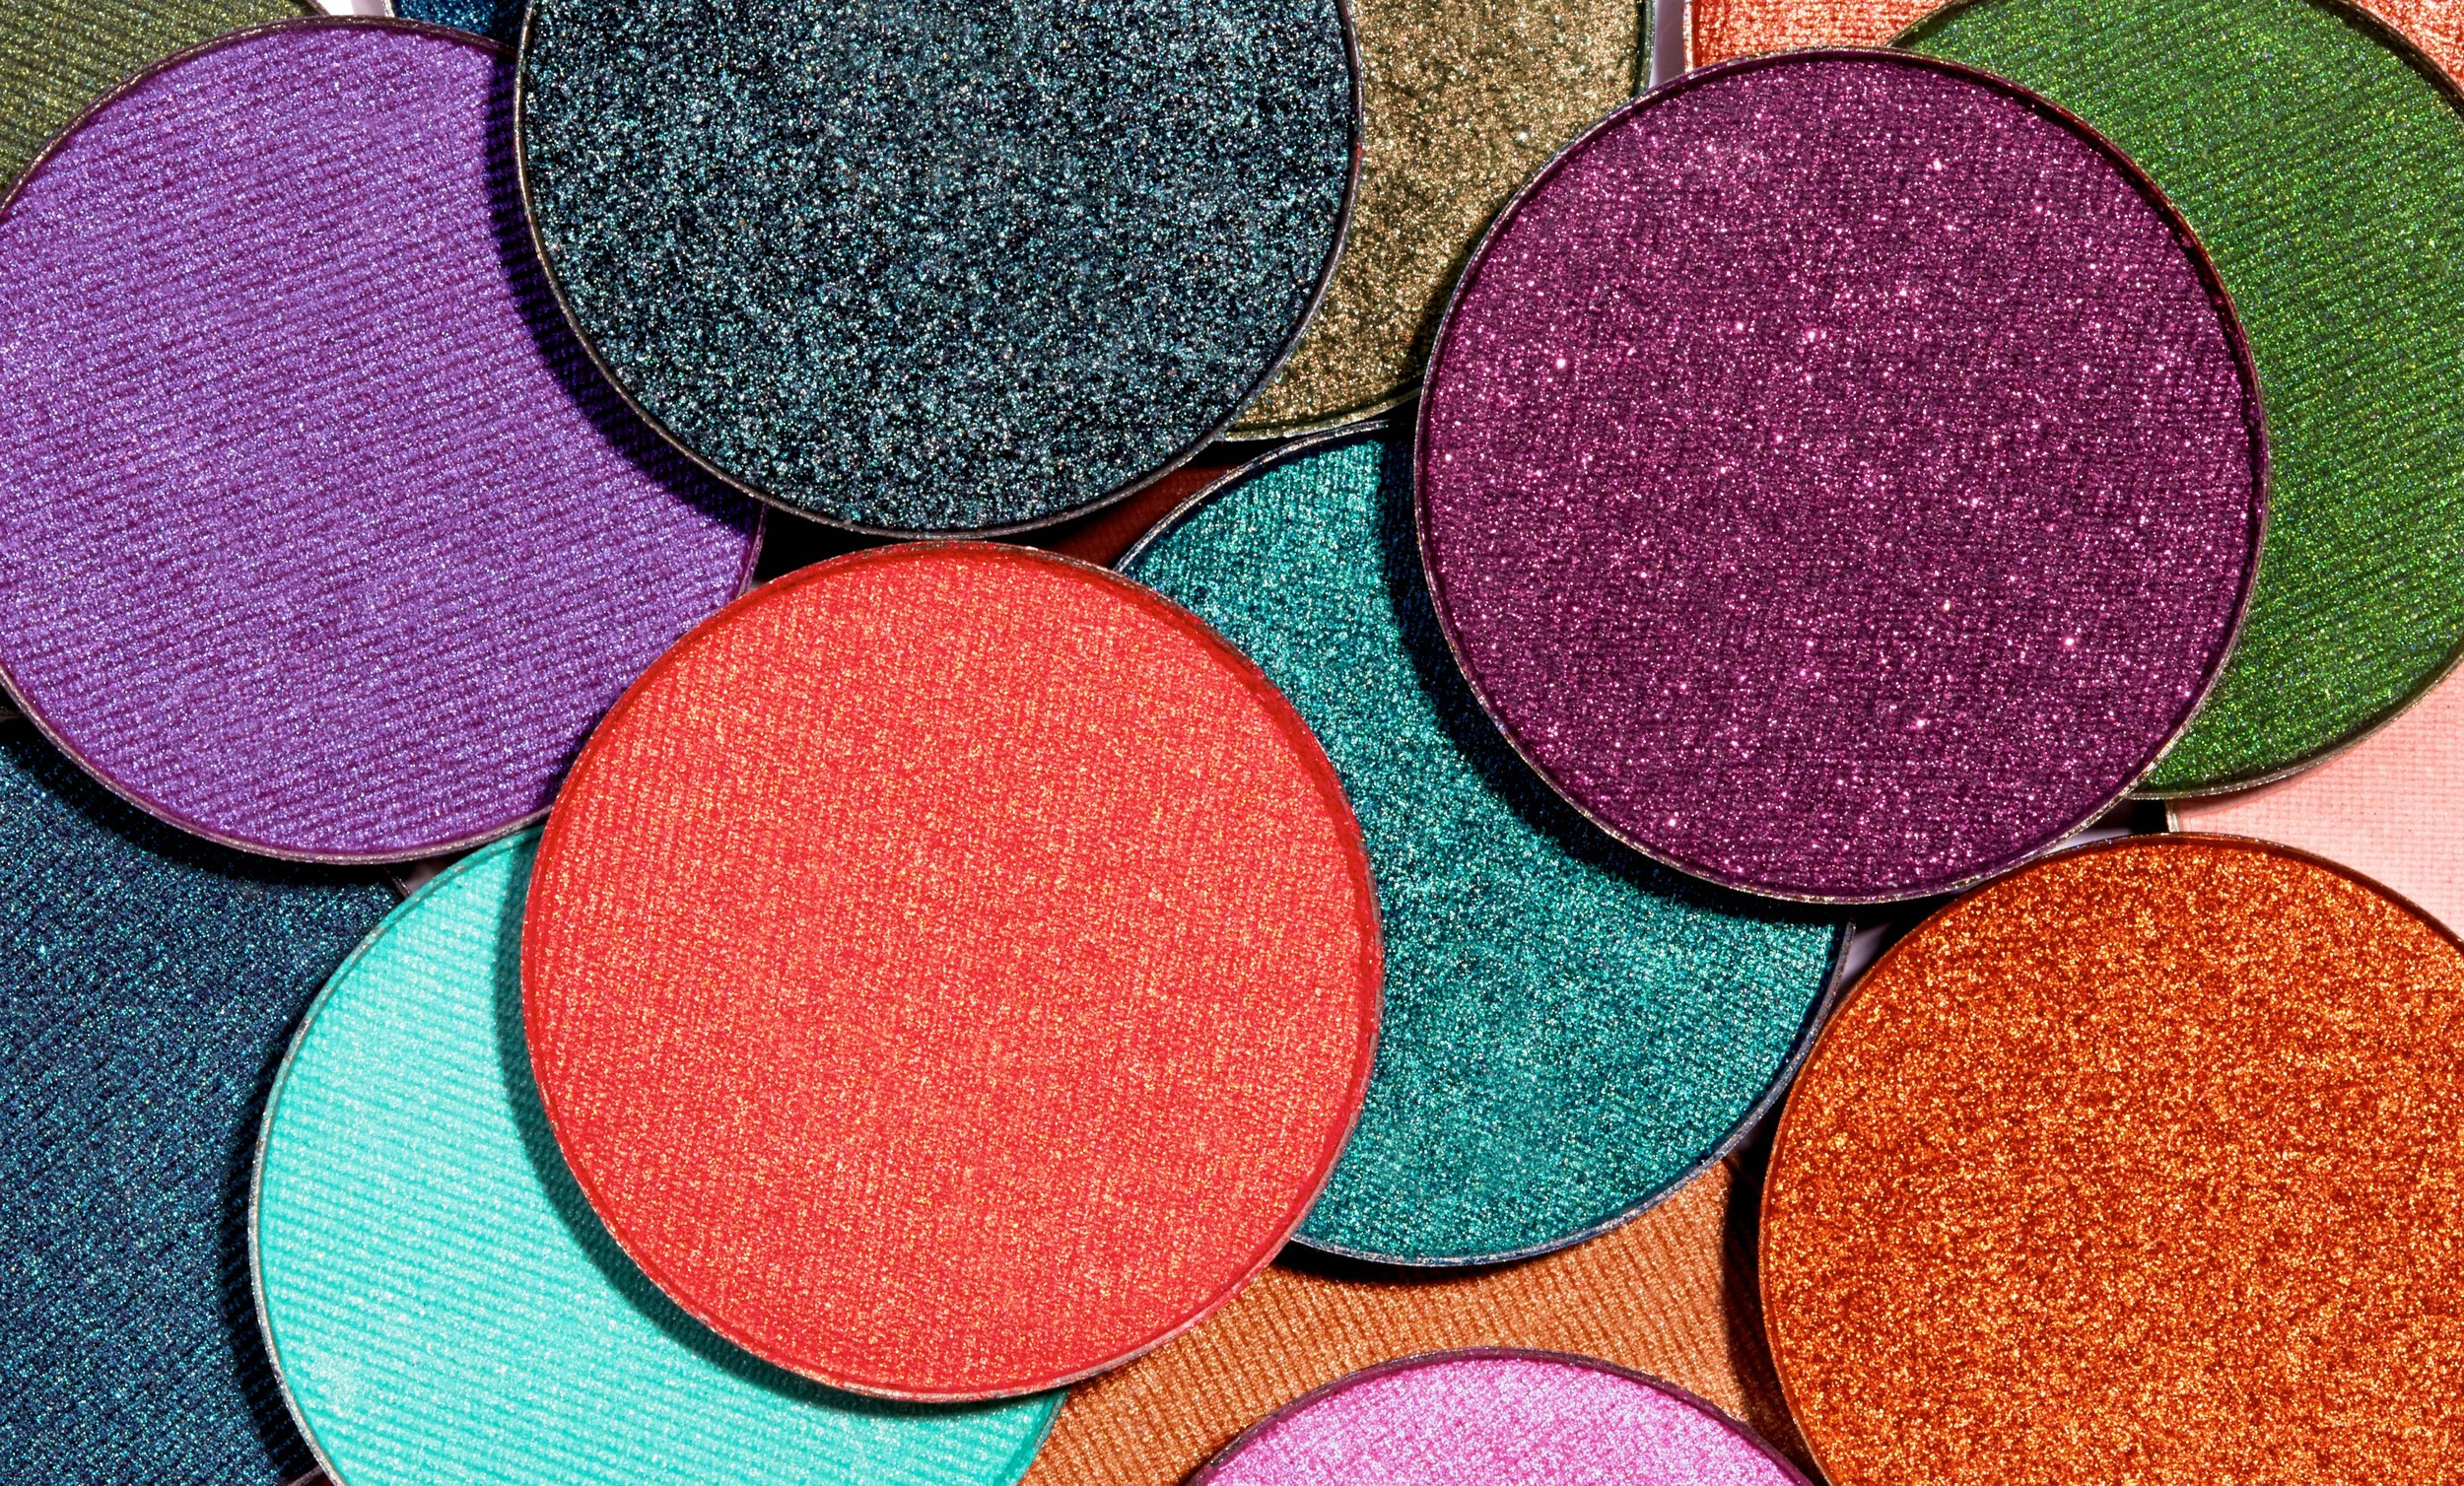 160616_EyeShadows_014 copy.jpg